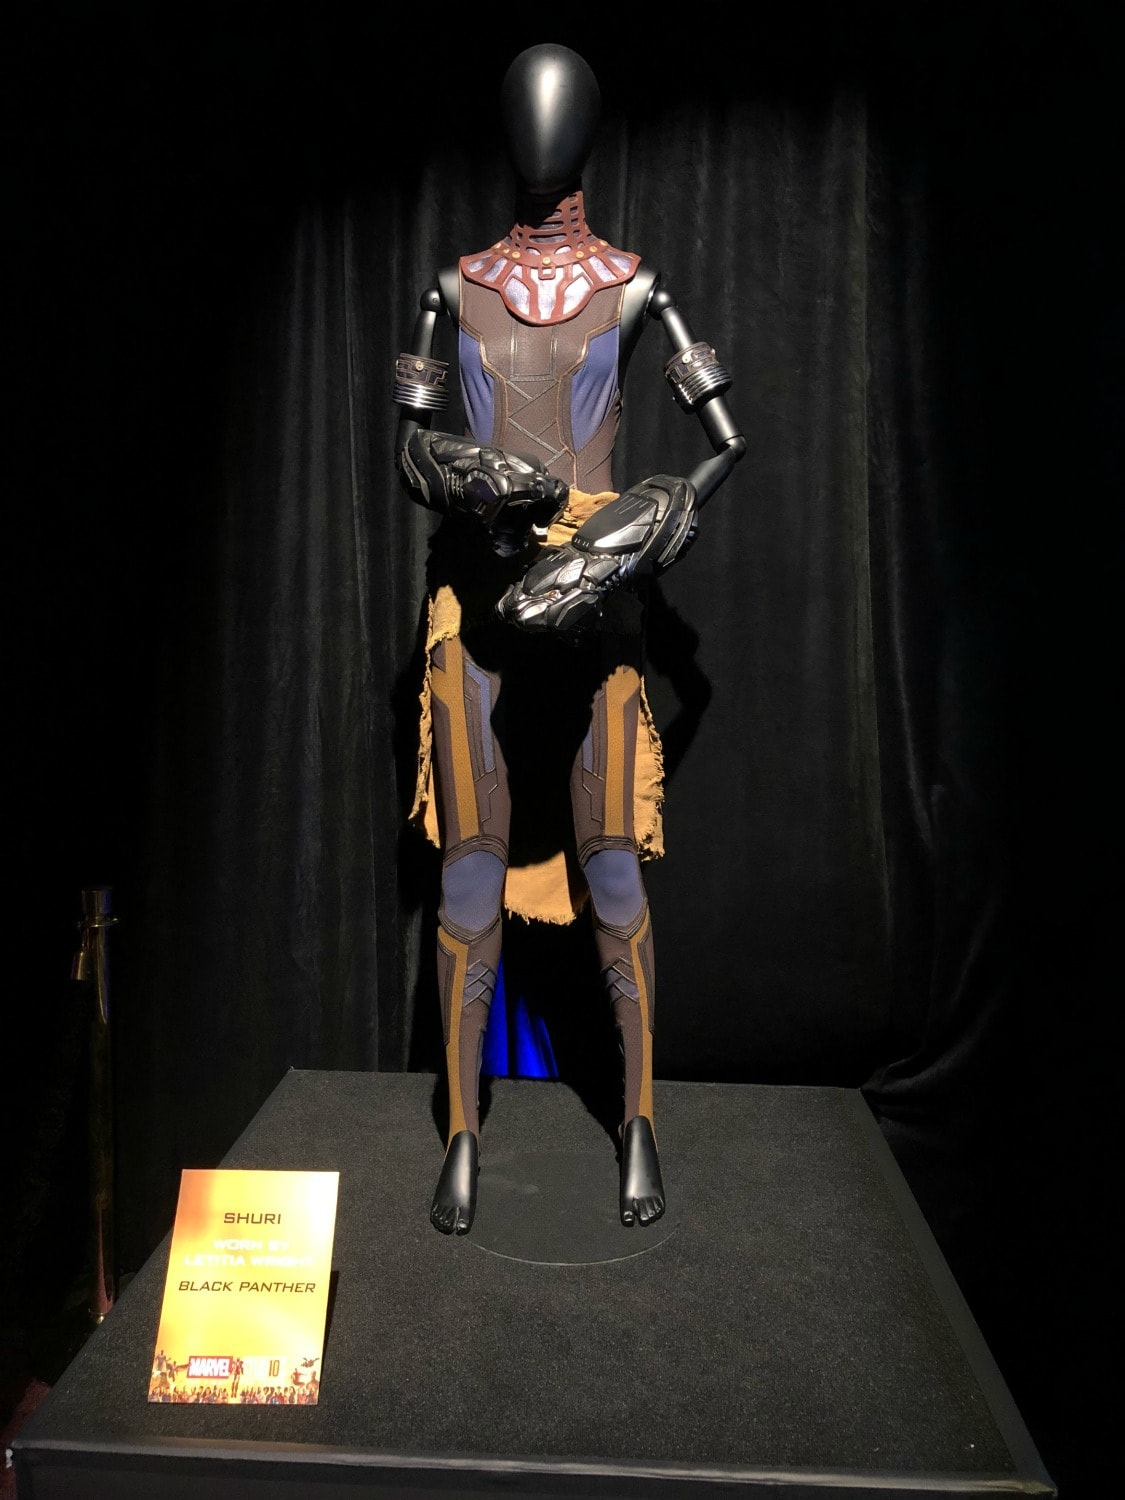 shuri black panther costume